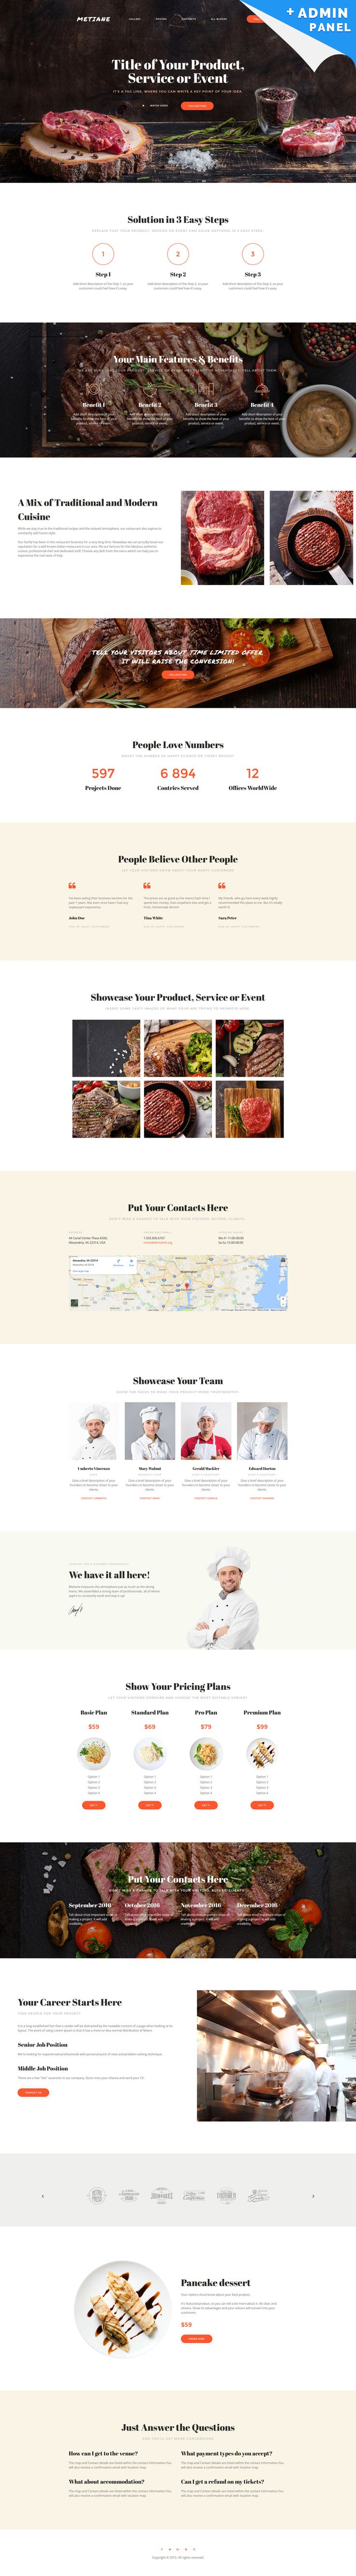 Metiane MotoCMS 3 Landing Builder - http://www.templatemonster.com/landing-page-template/steakhouse-landing-page-template-59236.html